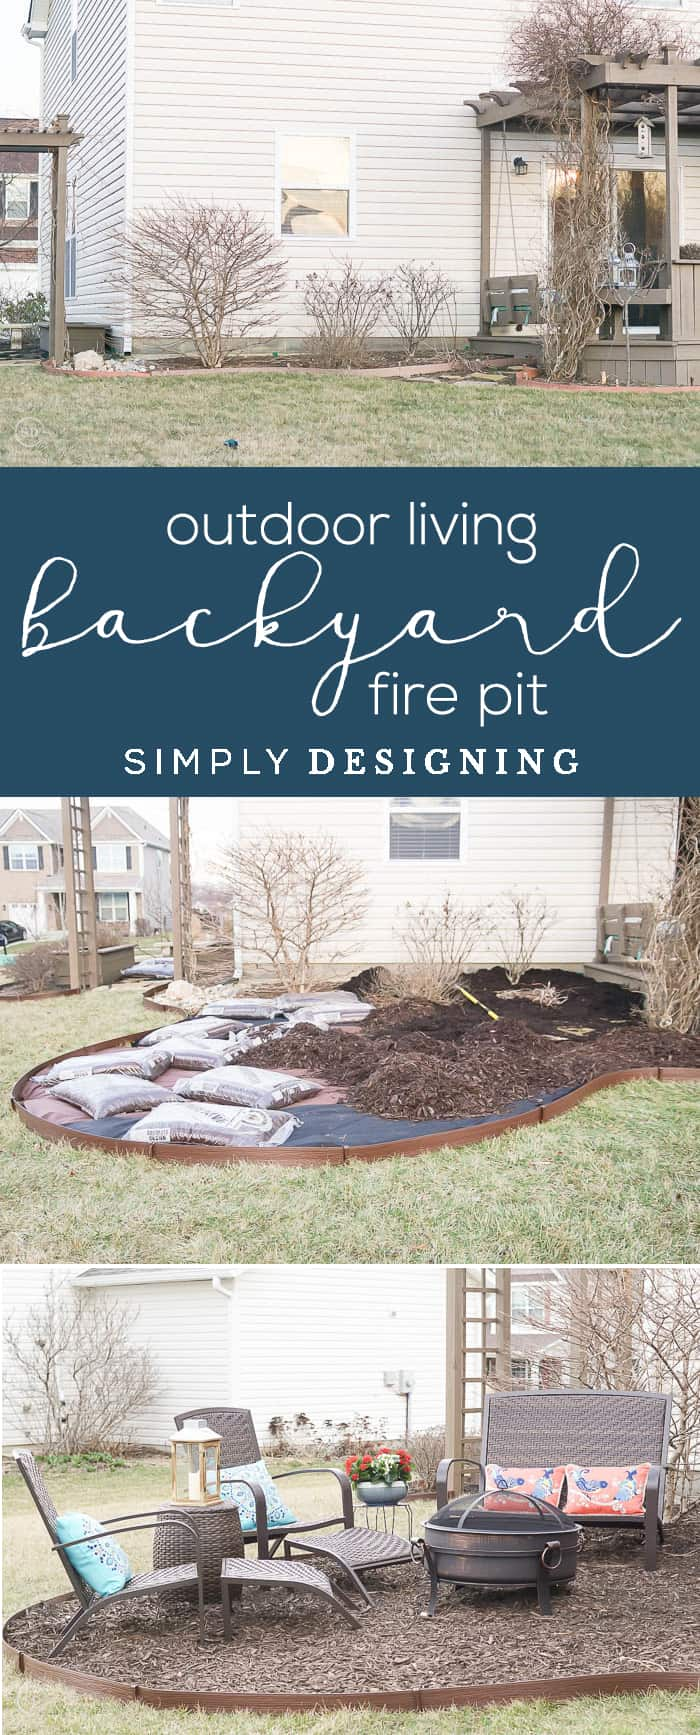 Outdoor Living with an Easy Backyard Fire Pit - easily create more outdoor living space